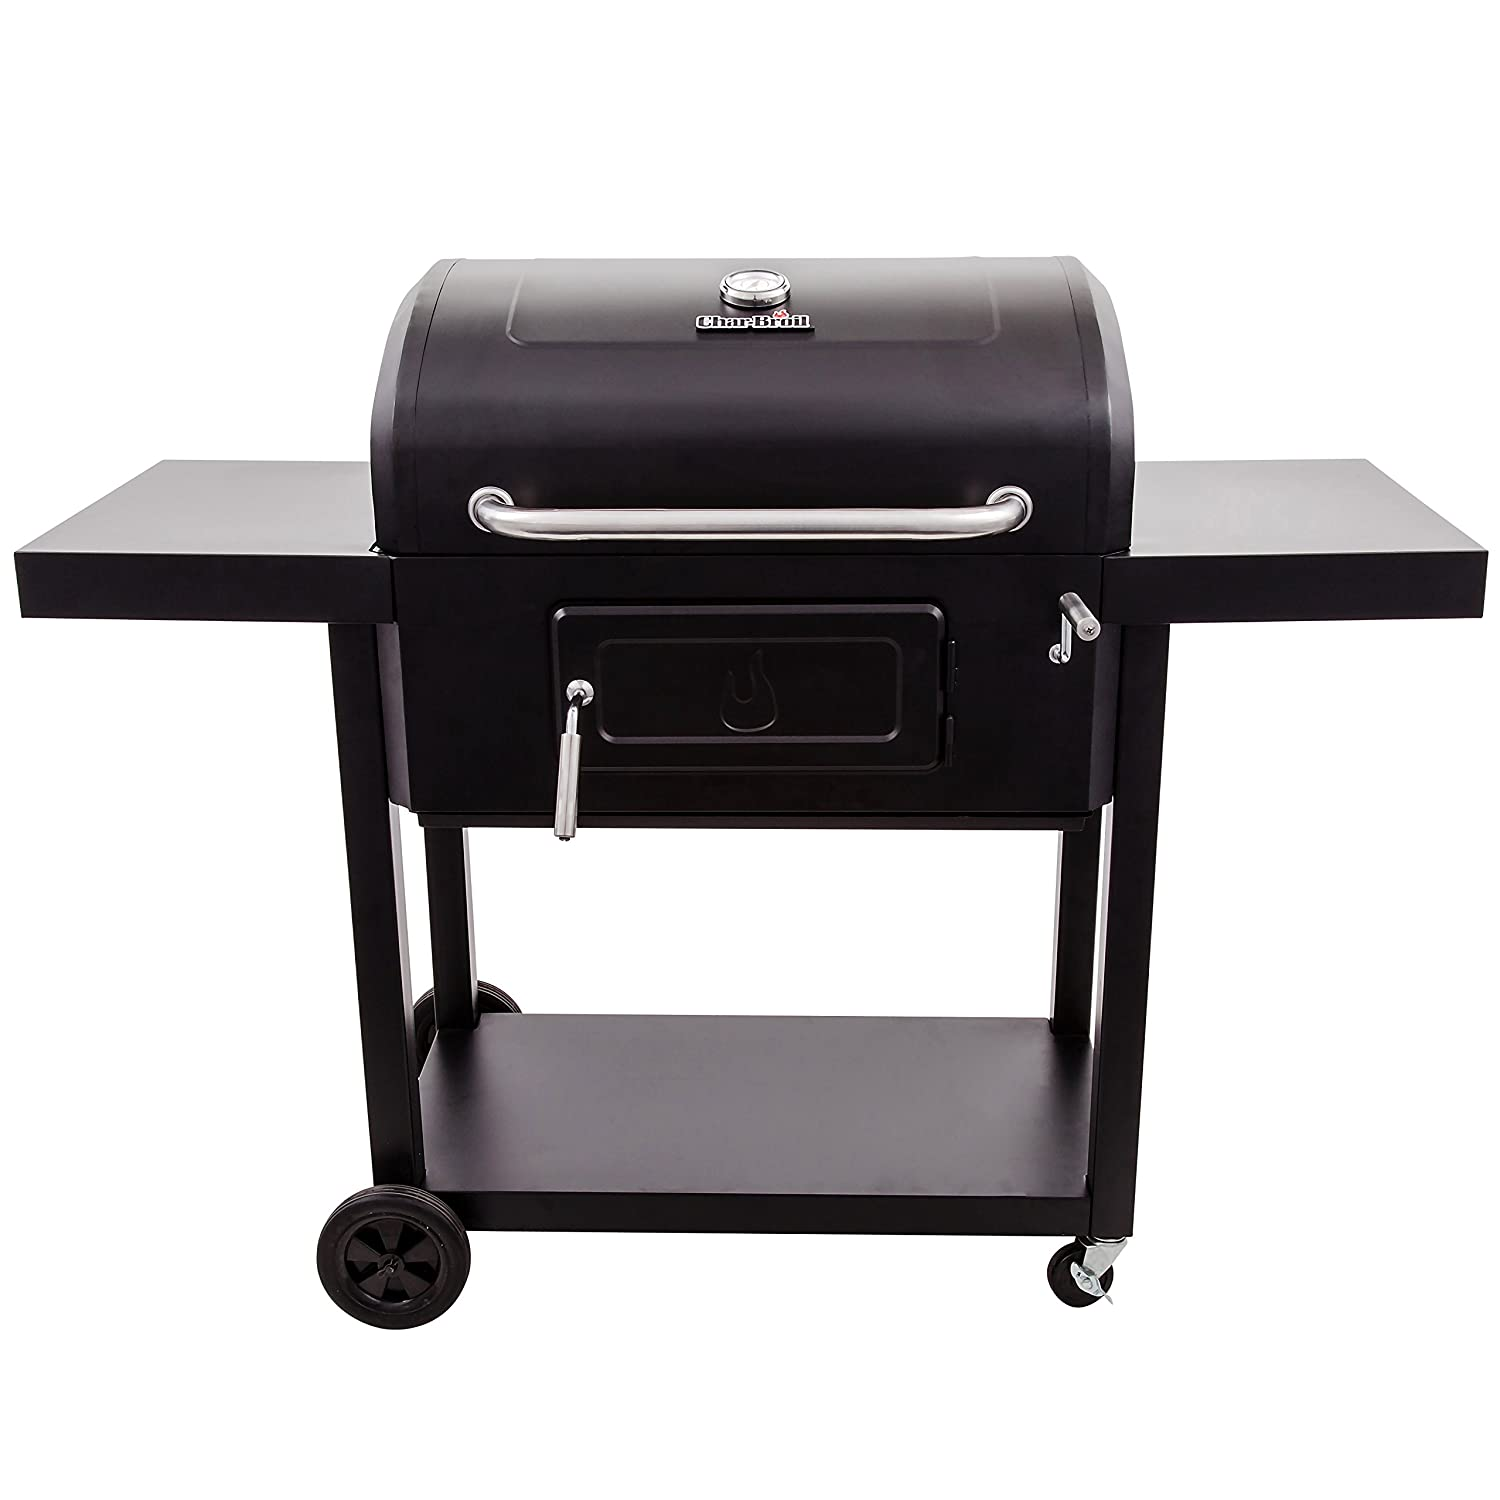 amazon com char broil charcoal grill 780 square inch garden